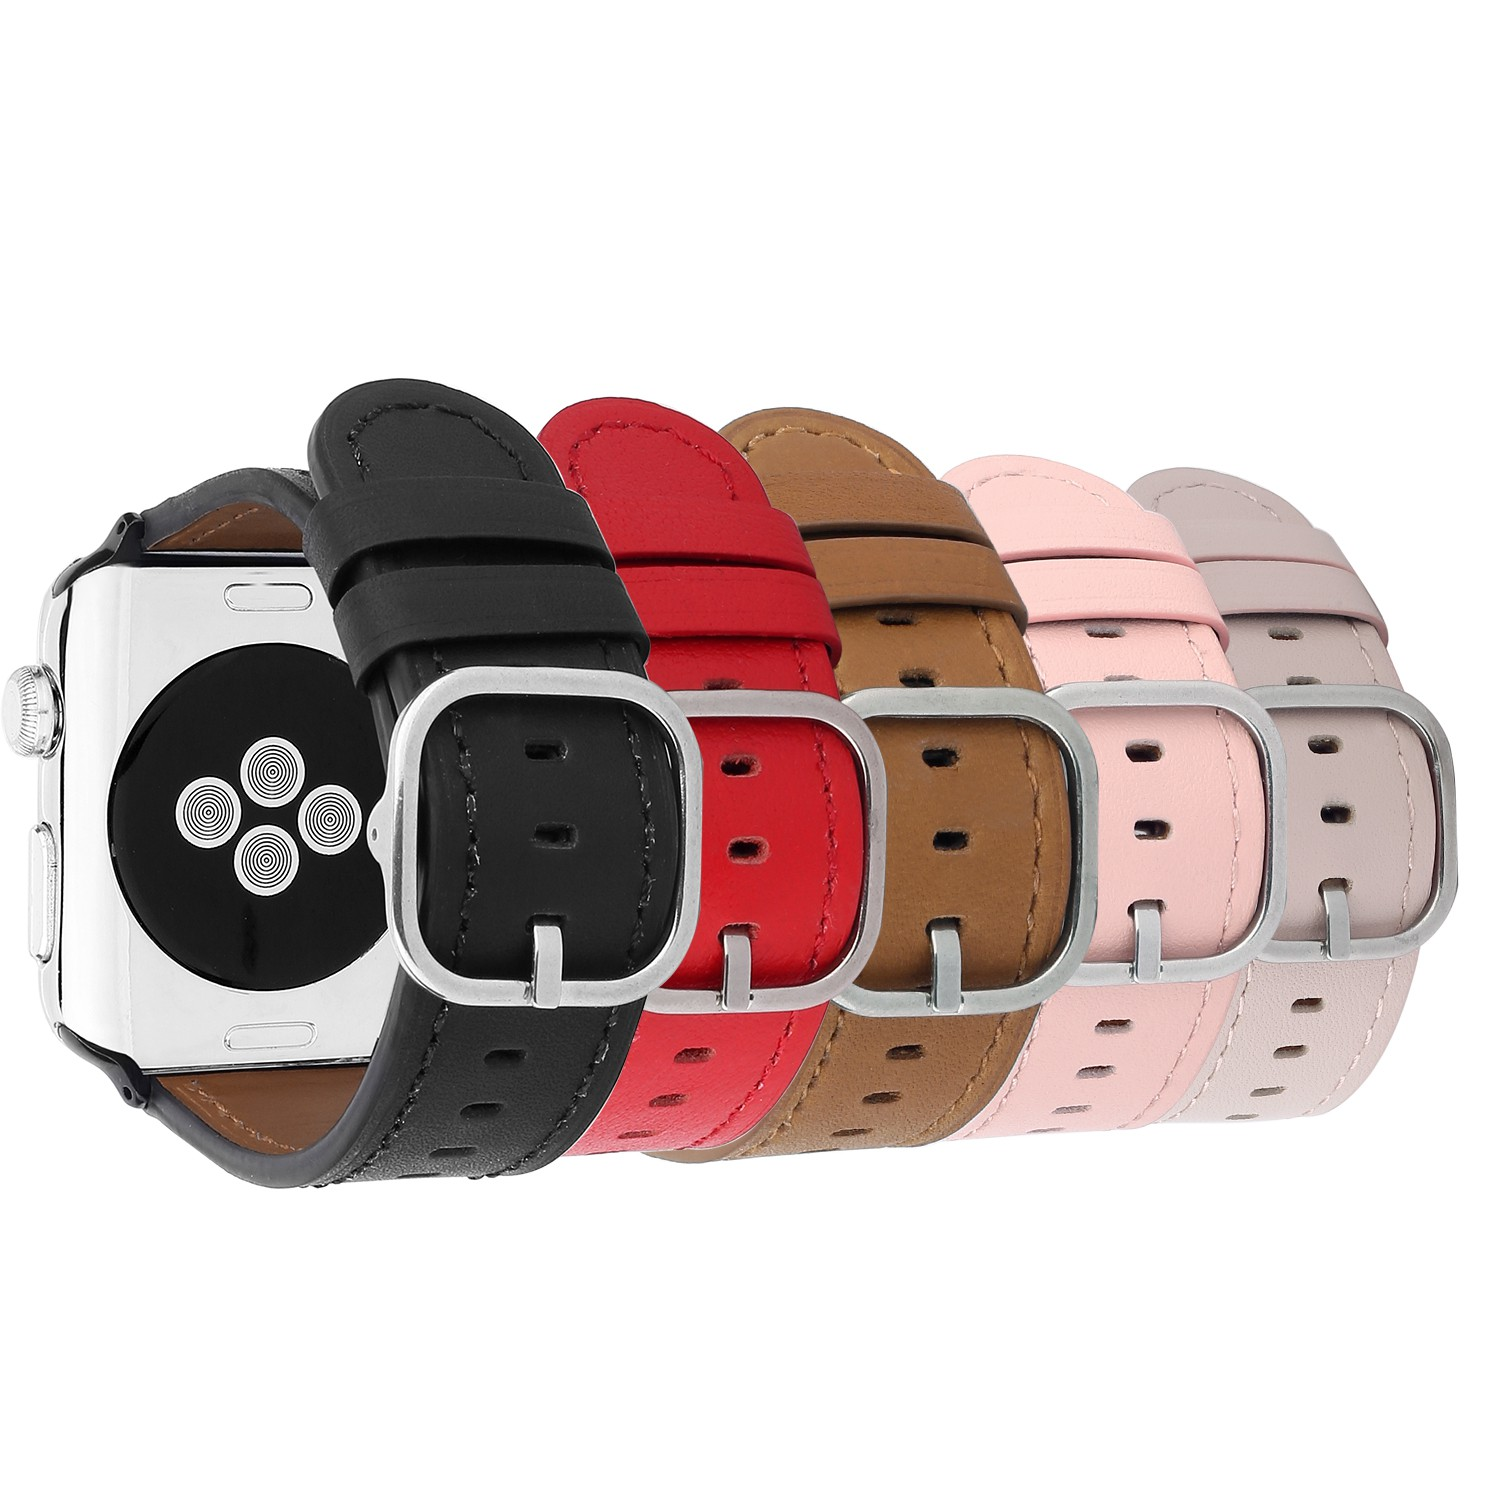 Genuine Leather Wrist Strap for Apple Watch Series 1 2 3 Band Classic Metal Buckle Wristband Belt for iWatch 42mm 38mm Bracelet genuine leather loop band for apple watch band 42mm 38mm strap bracelet for iwatch series 1 2 3 adjustable magnetic closure belt